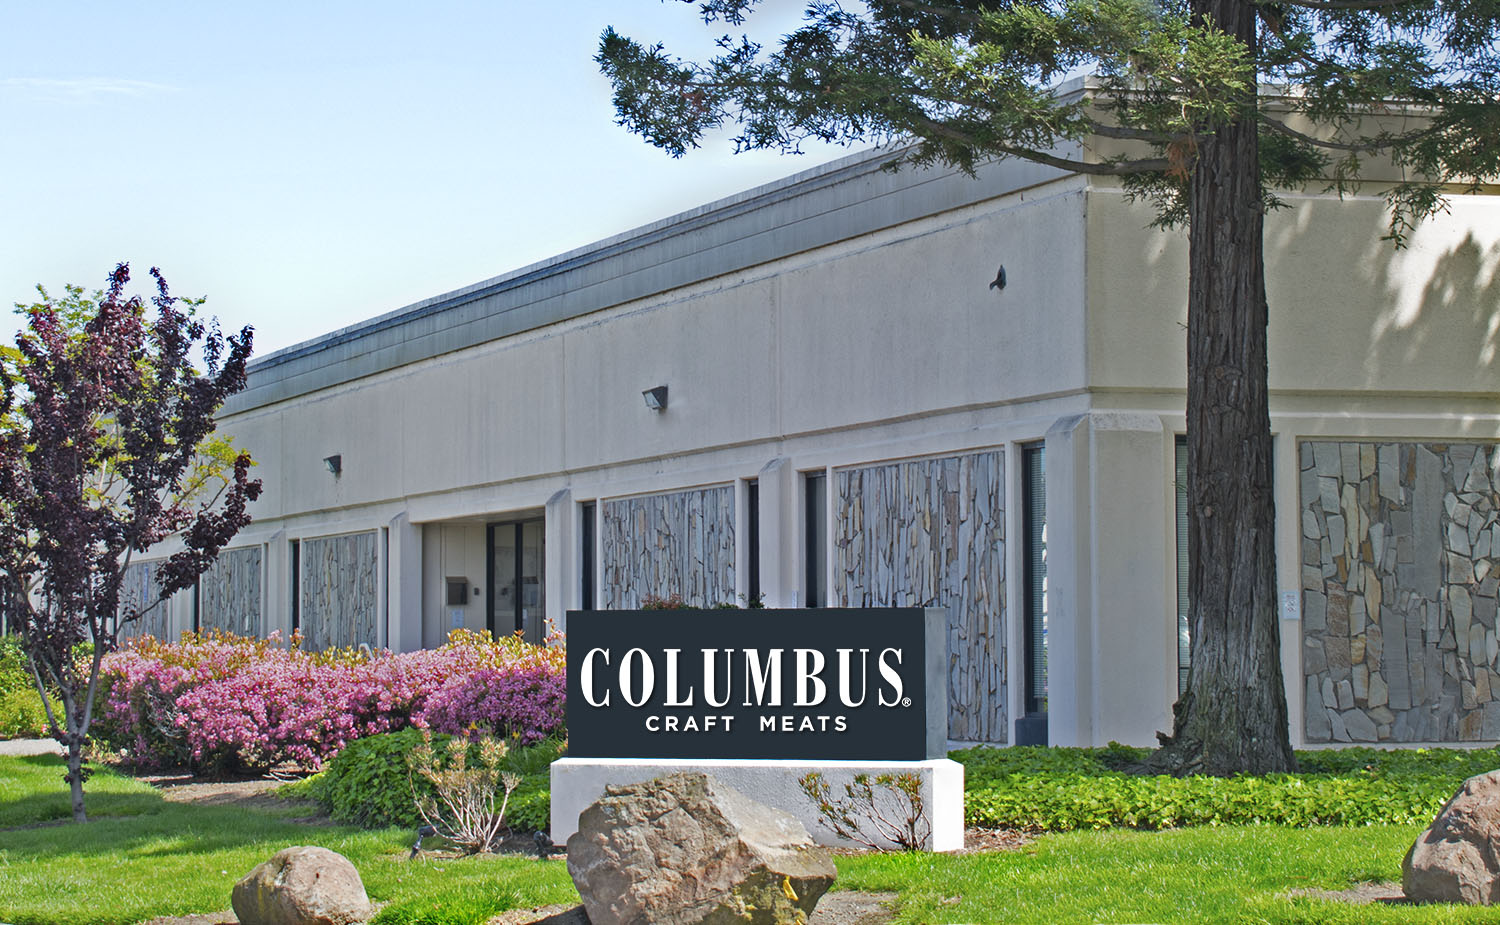 Columbus Craft Meats headquarters building